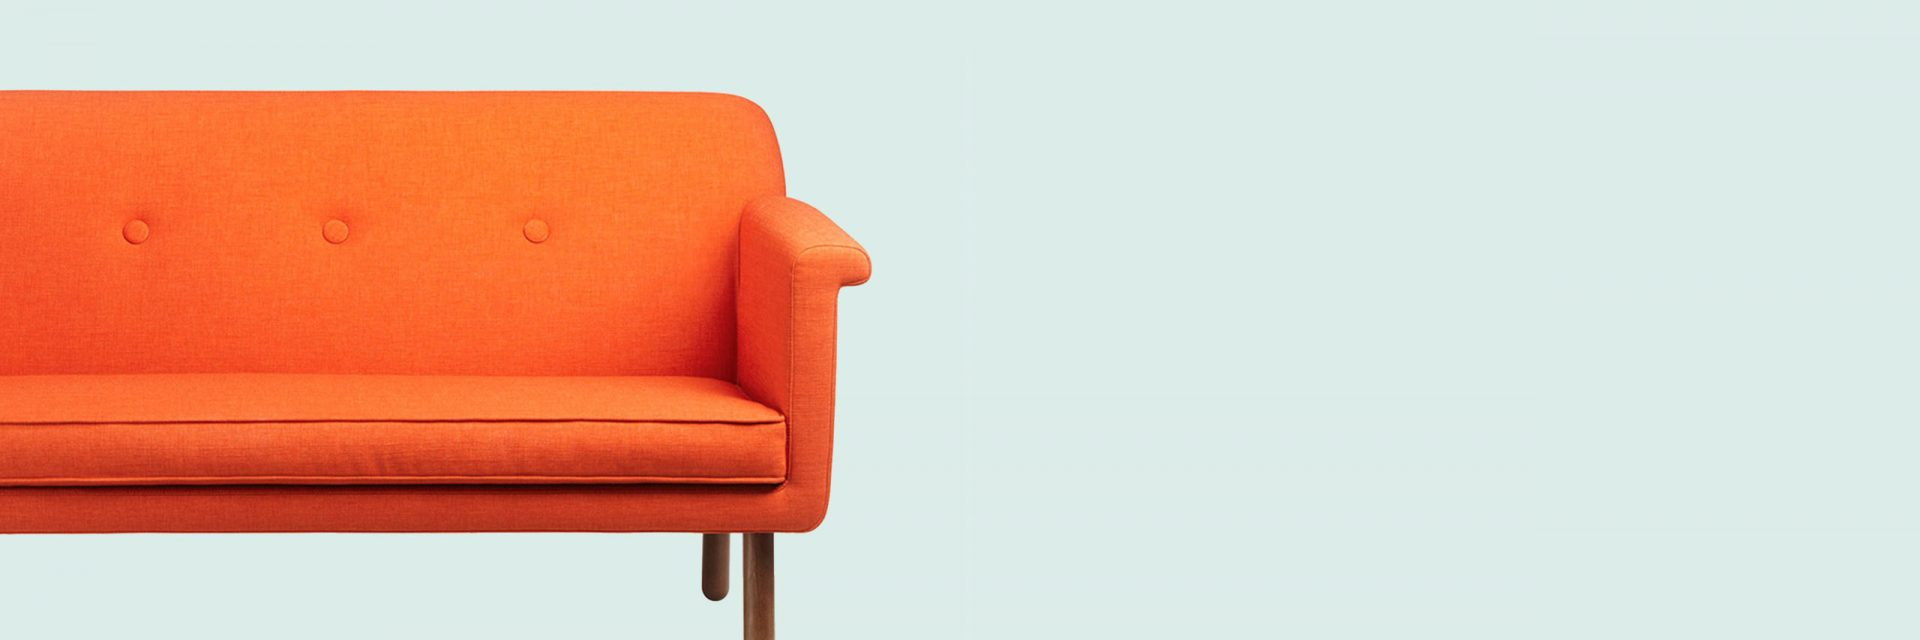 sofa orange banner bkgnd